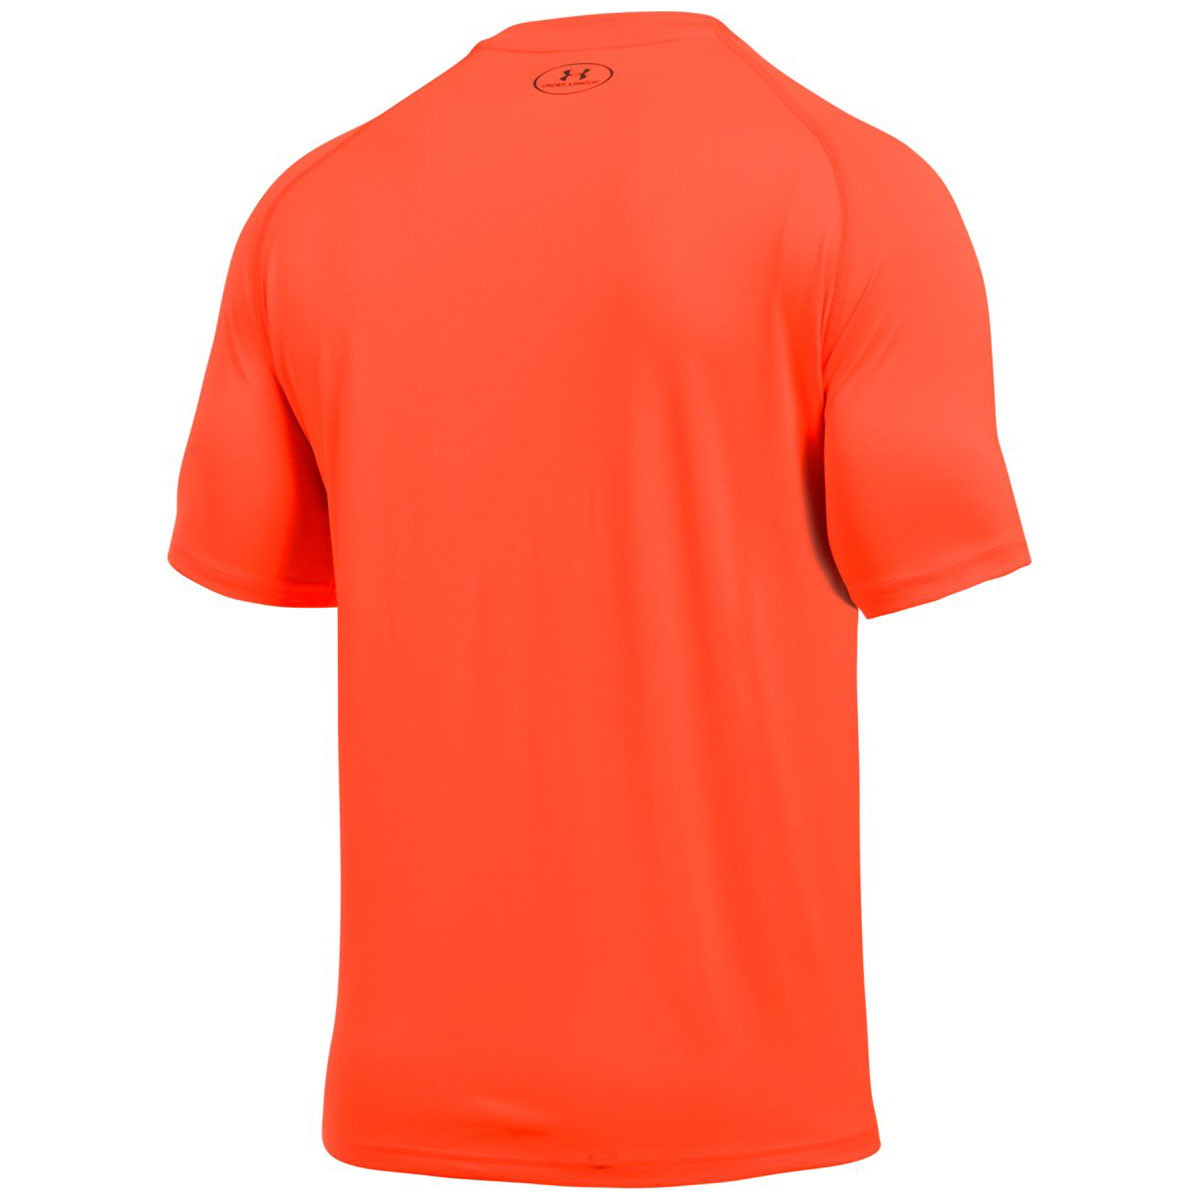 Under-Armour-Mens-UA-Tech-SS-T-Shirt-HeatGear-Training-31-OFF-RRP thumbnail 70